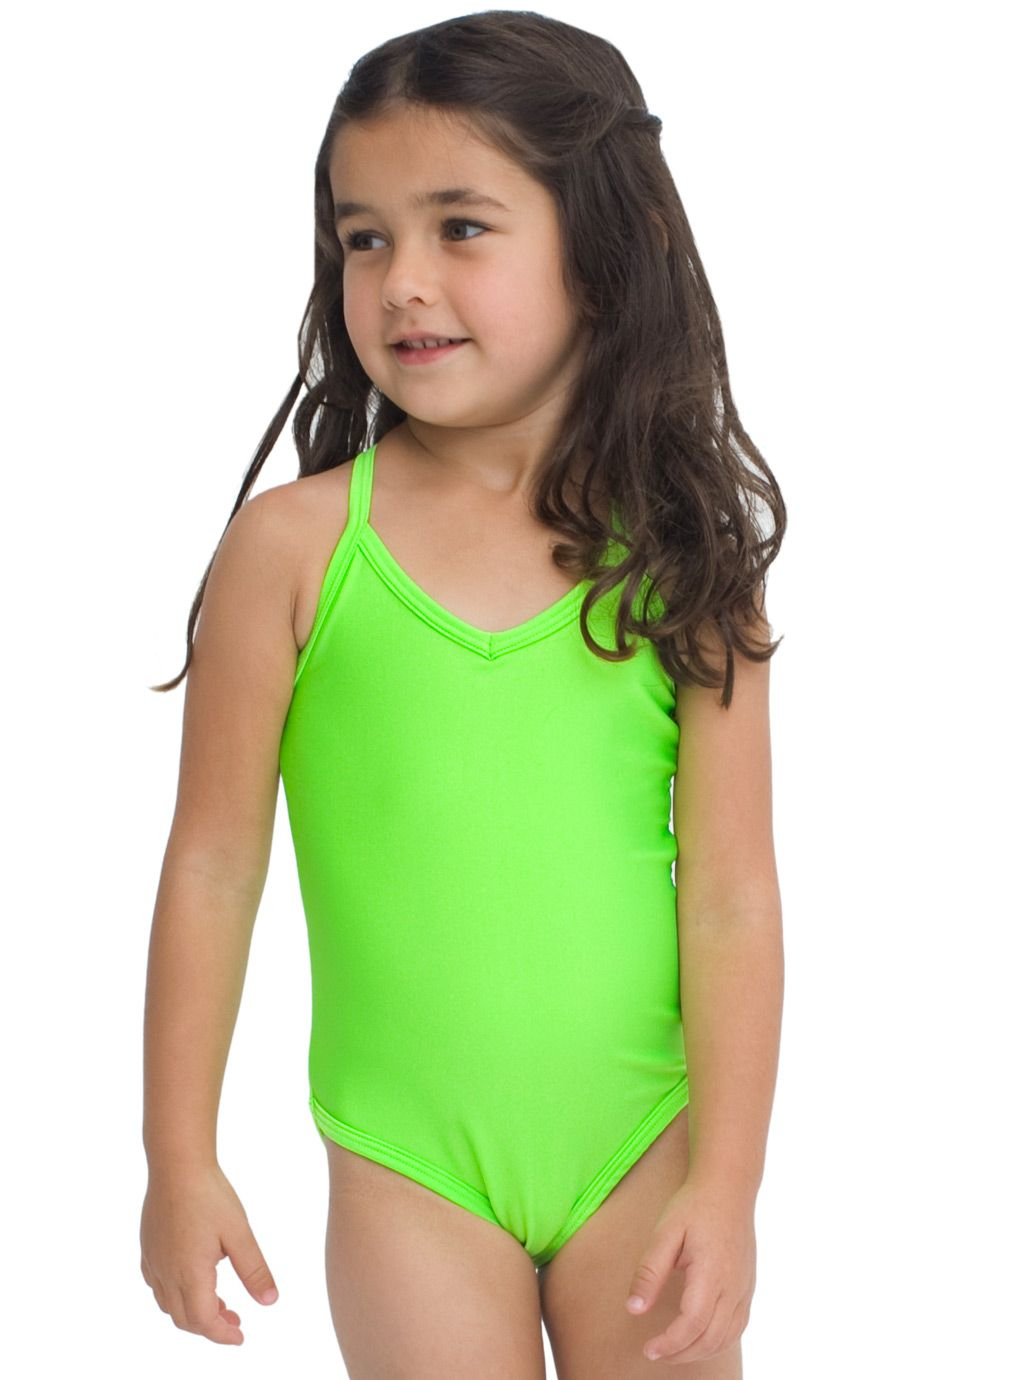 eating-out-very-young-girls-bathing-suit